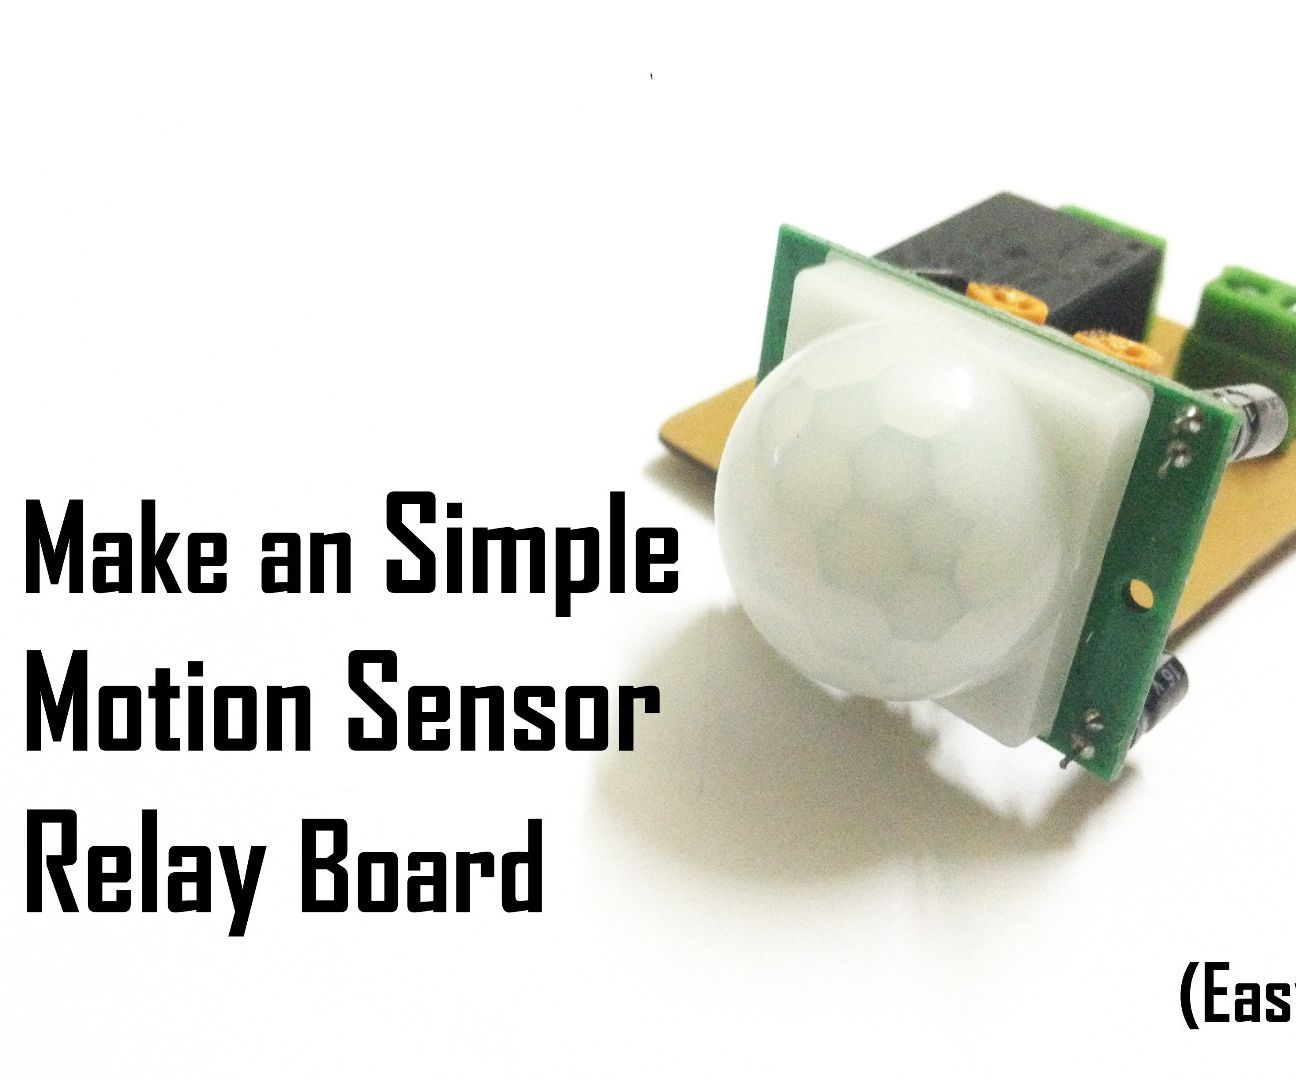 Make an Simple Motion Sensor Relay Board (PIR): 12 Steps (with Pictures)